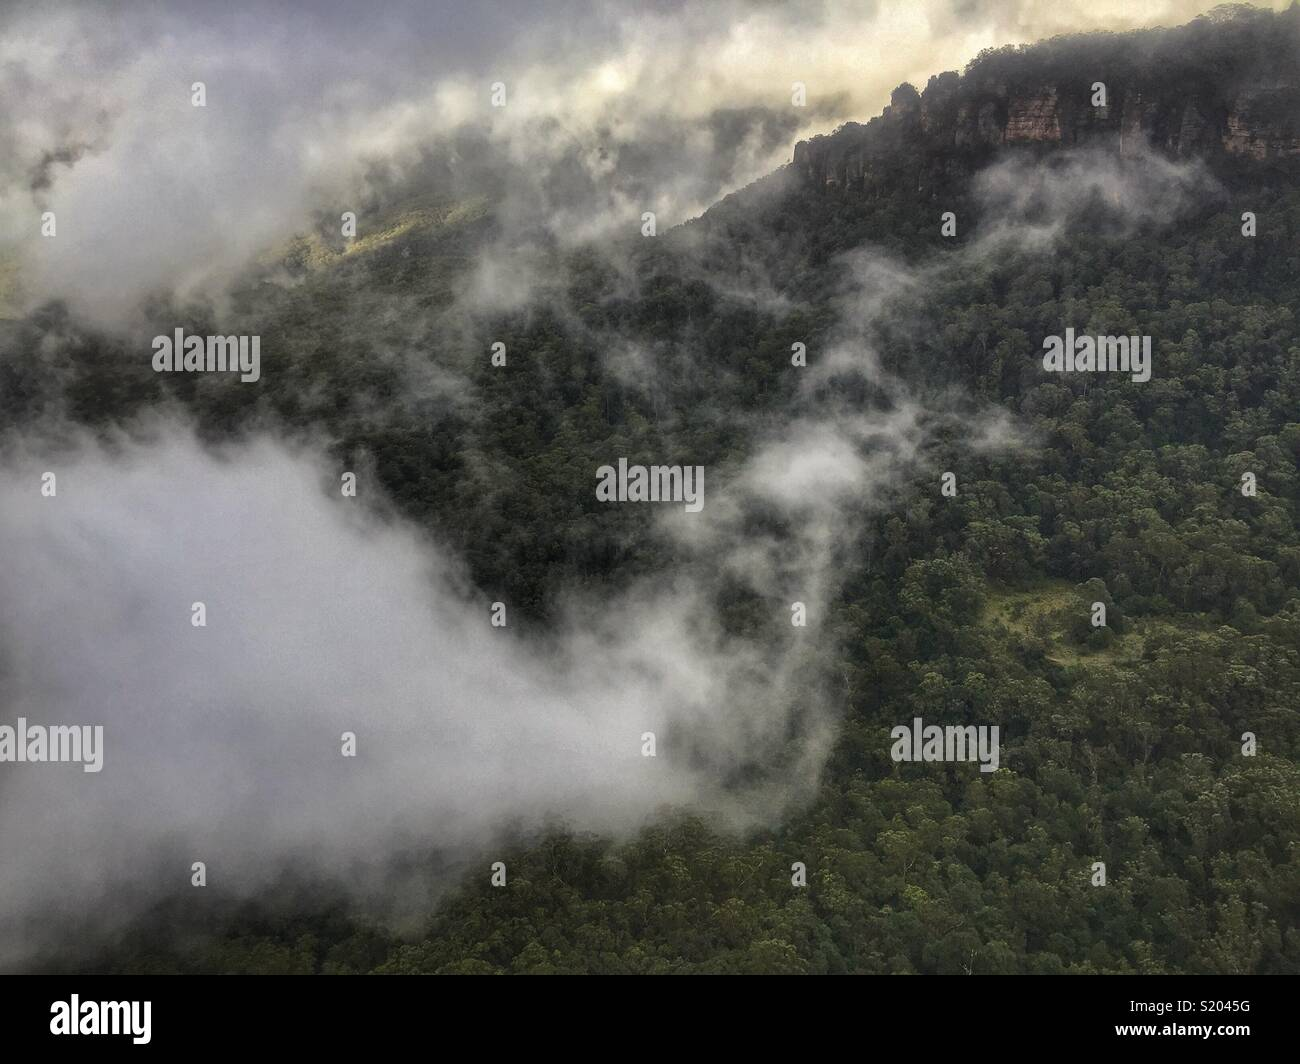 Low cloud swirls in the Jamison Valley below the sandstone cliffs from Elysian Rock Lookout to The Three Sisters, Blue Mountains National Park, NSW, Australia Stock Photo